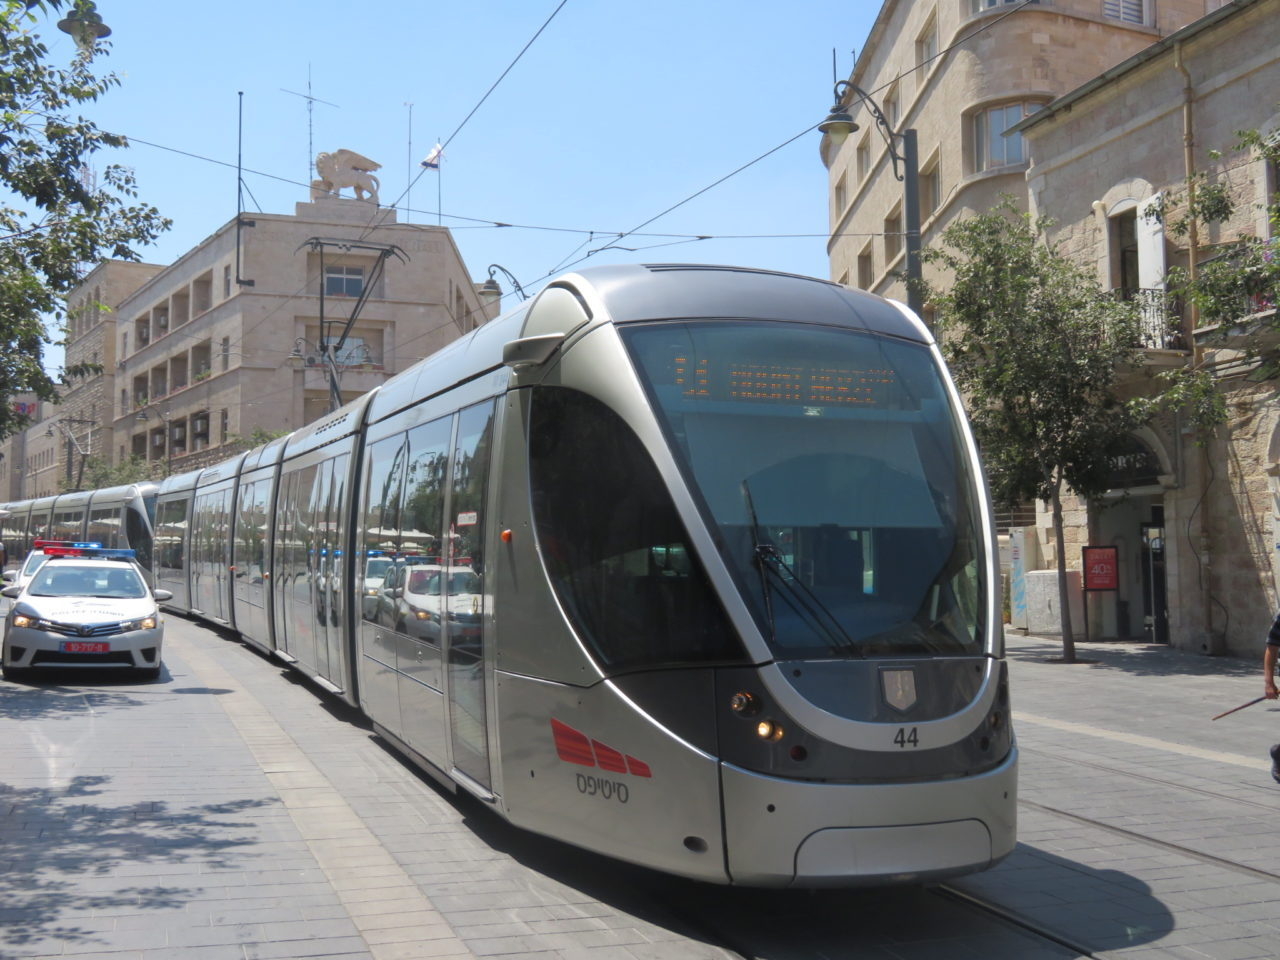 The joys of walking Jerusalem - Jerusalem has a modern network of trams, buses, taxis